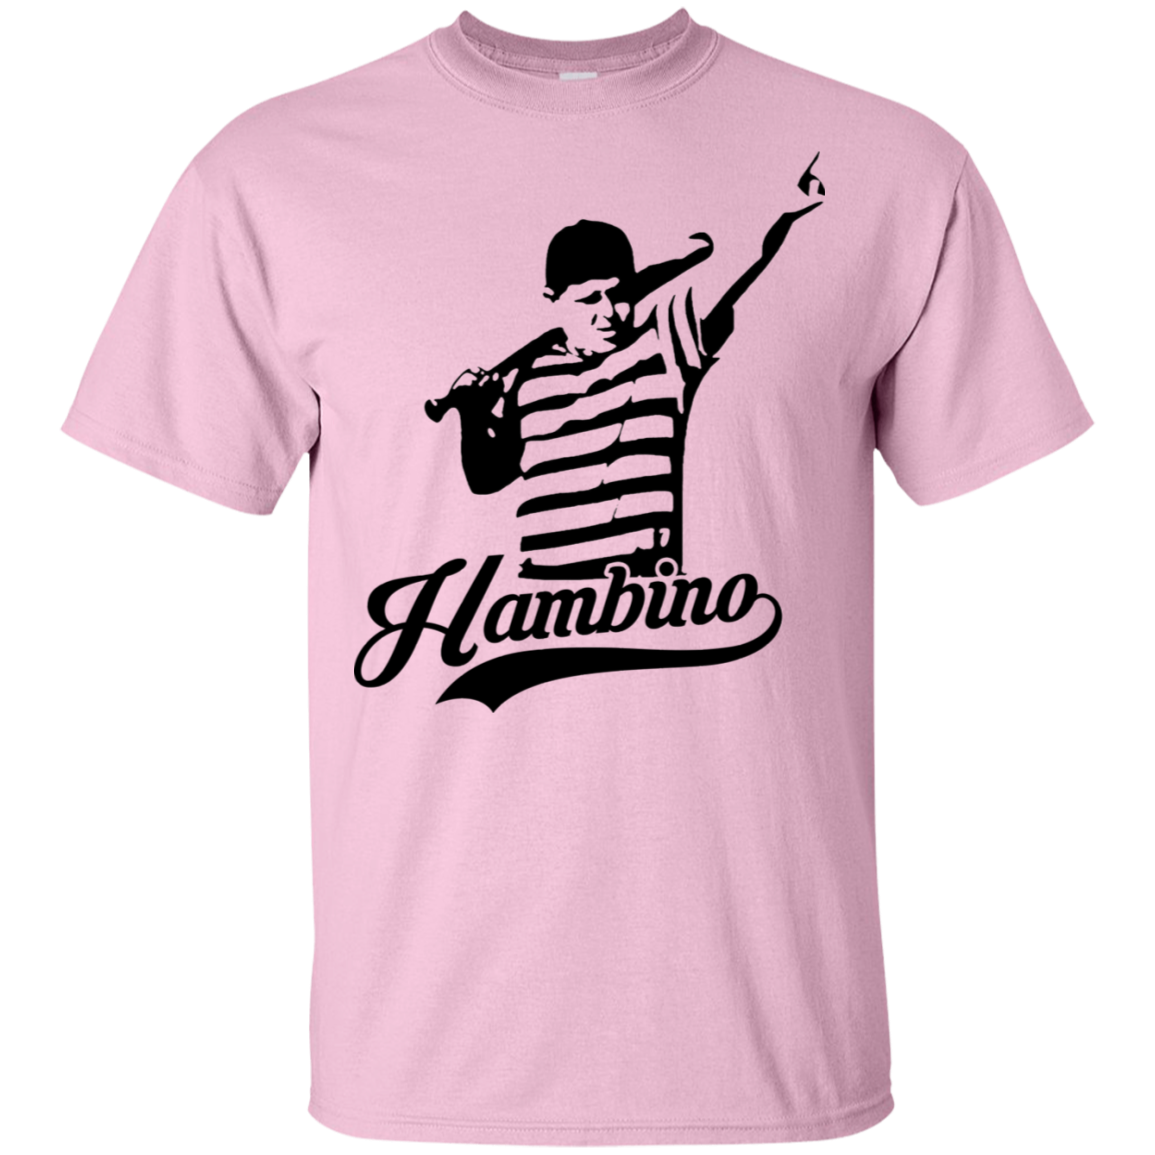 The Great Hambino Shirt Ultra Cotton Shirt